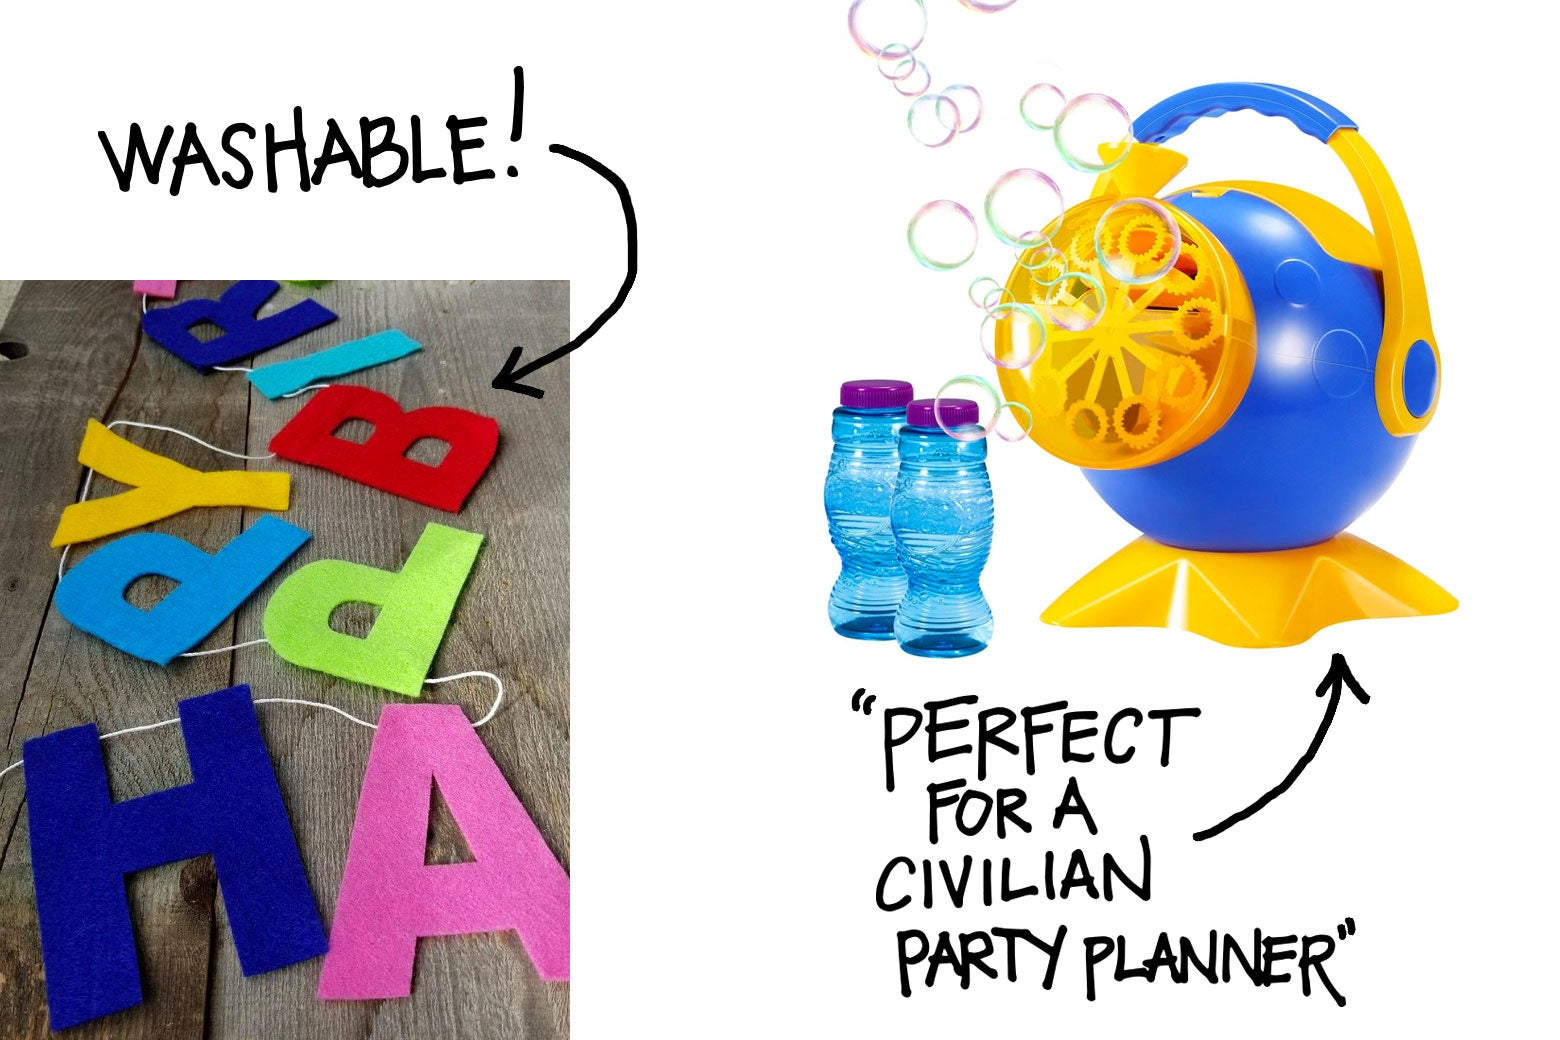 A collage of fun things to have at a kid's birthday party, including a birthday banner and a bubble machine.